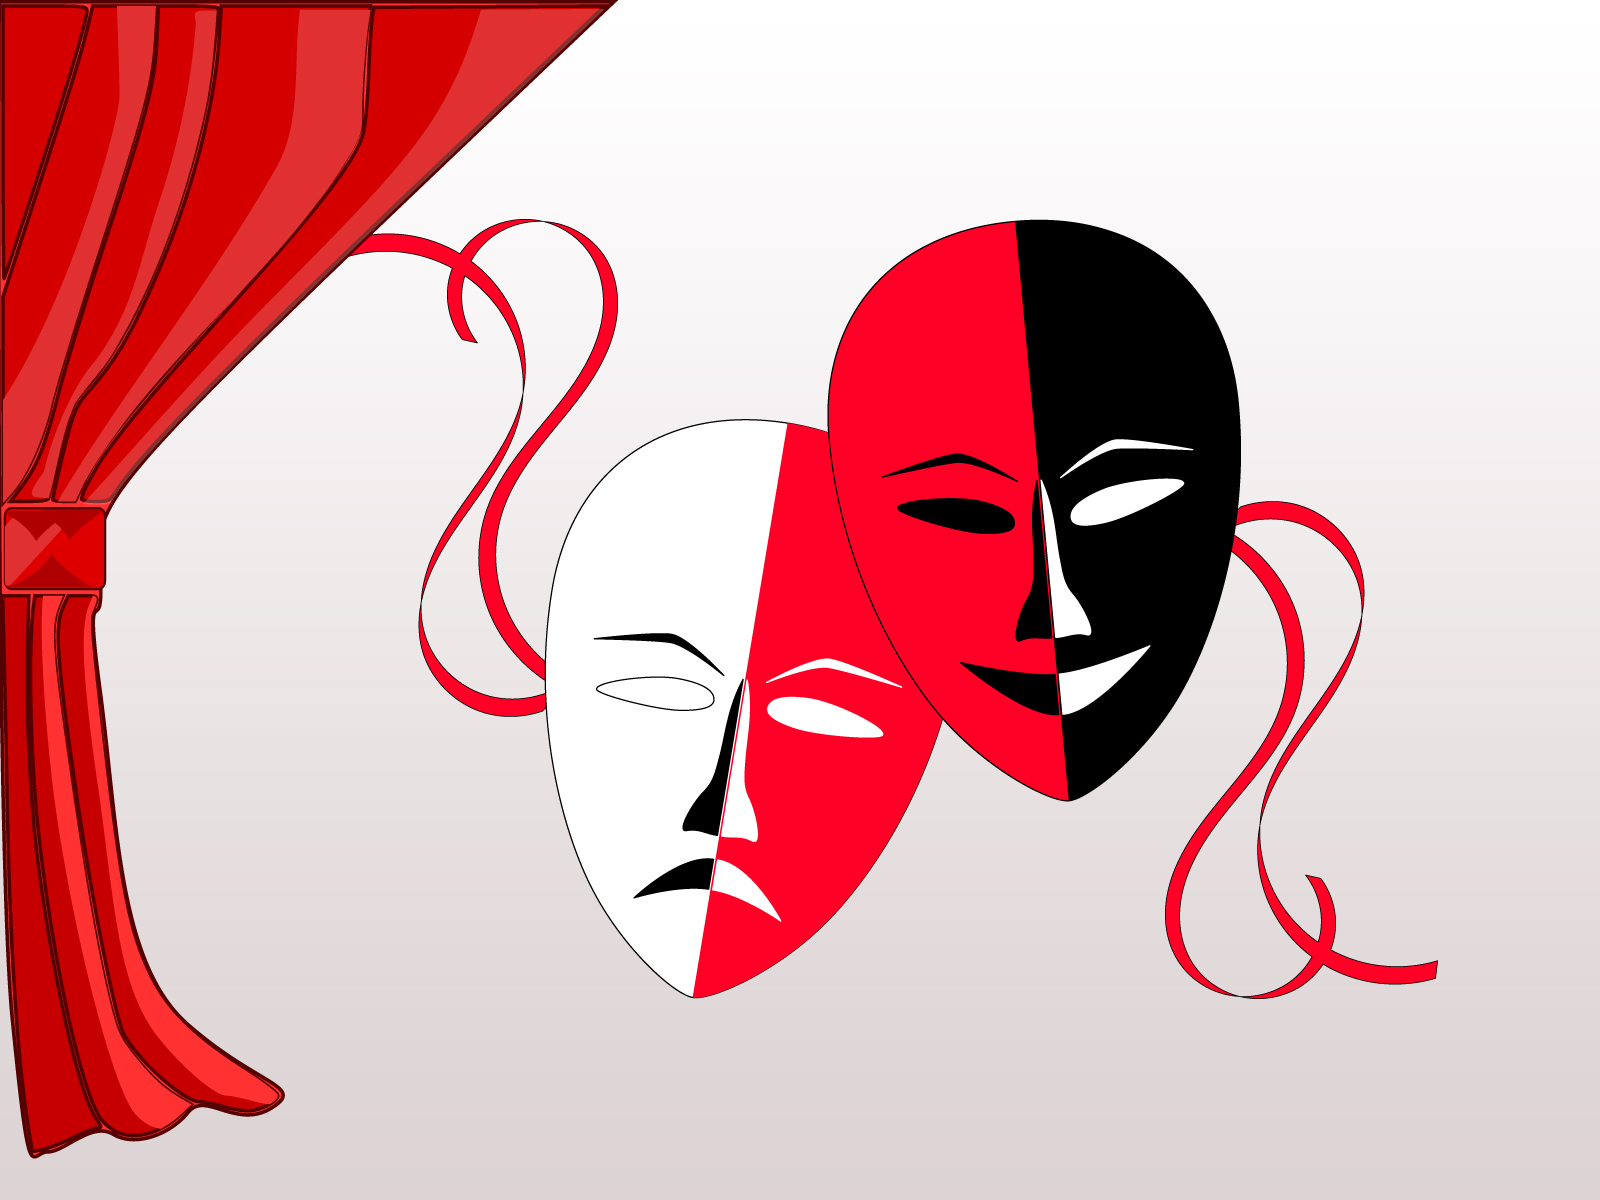 theatre masks backgrounds black  movie   tv  red  white templates free ppt backgrounds and theatre clipart theater clip art images